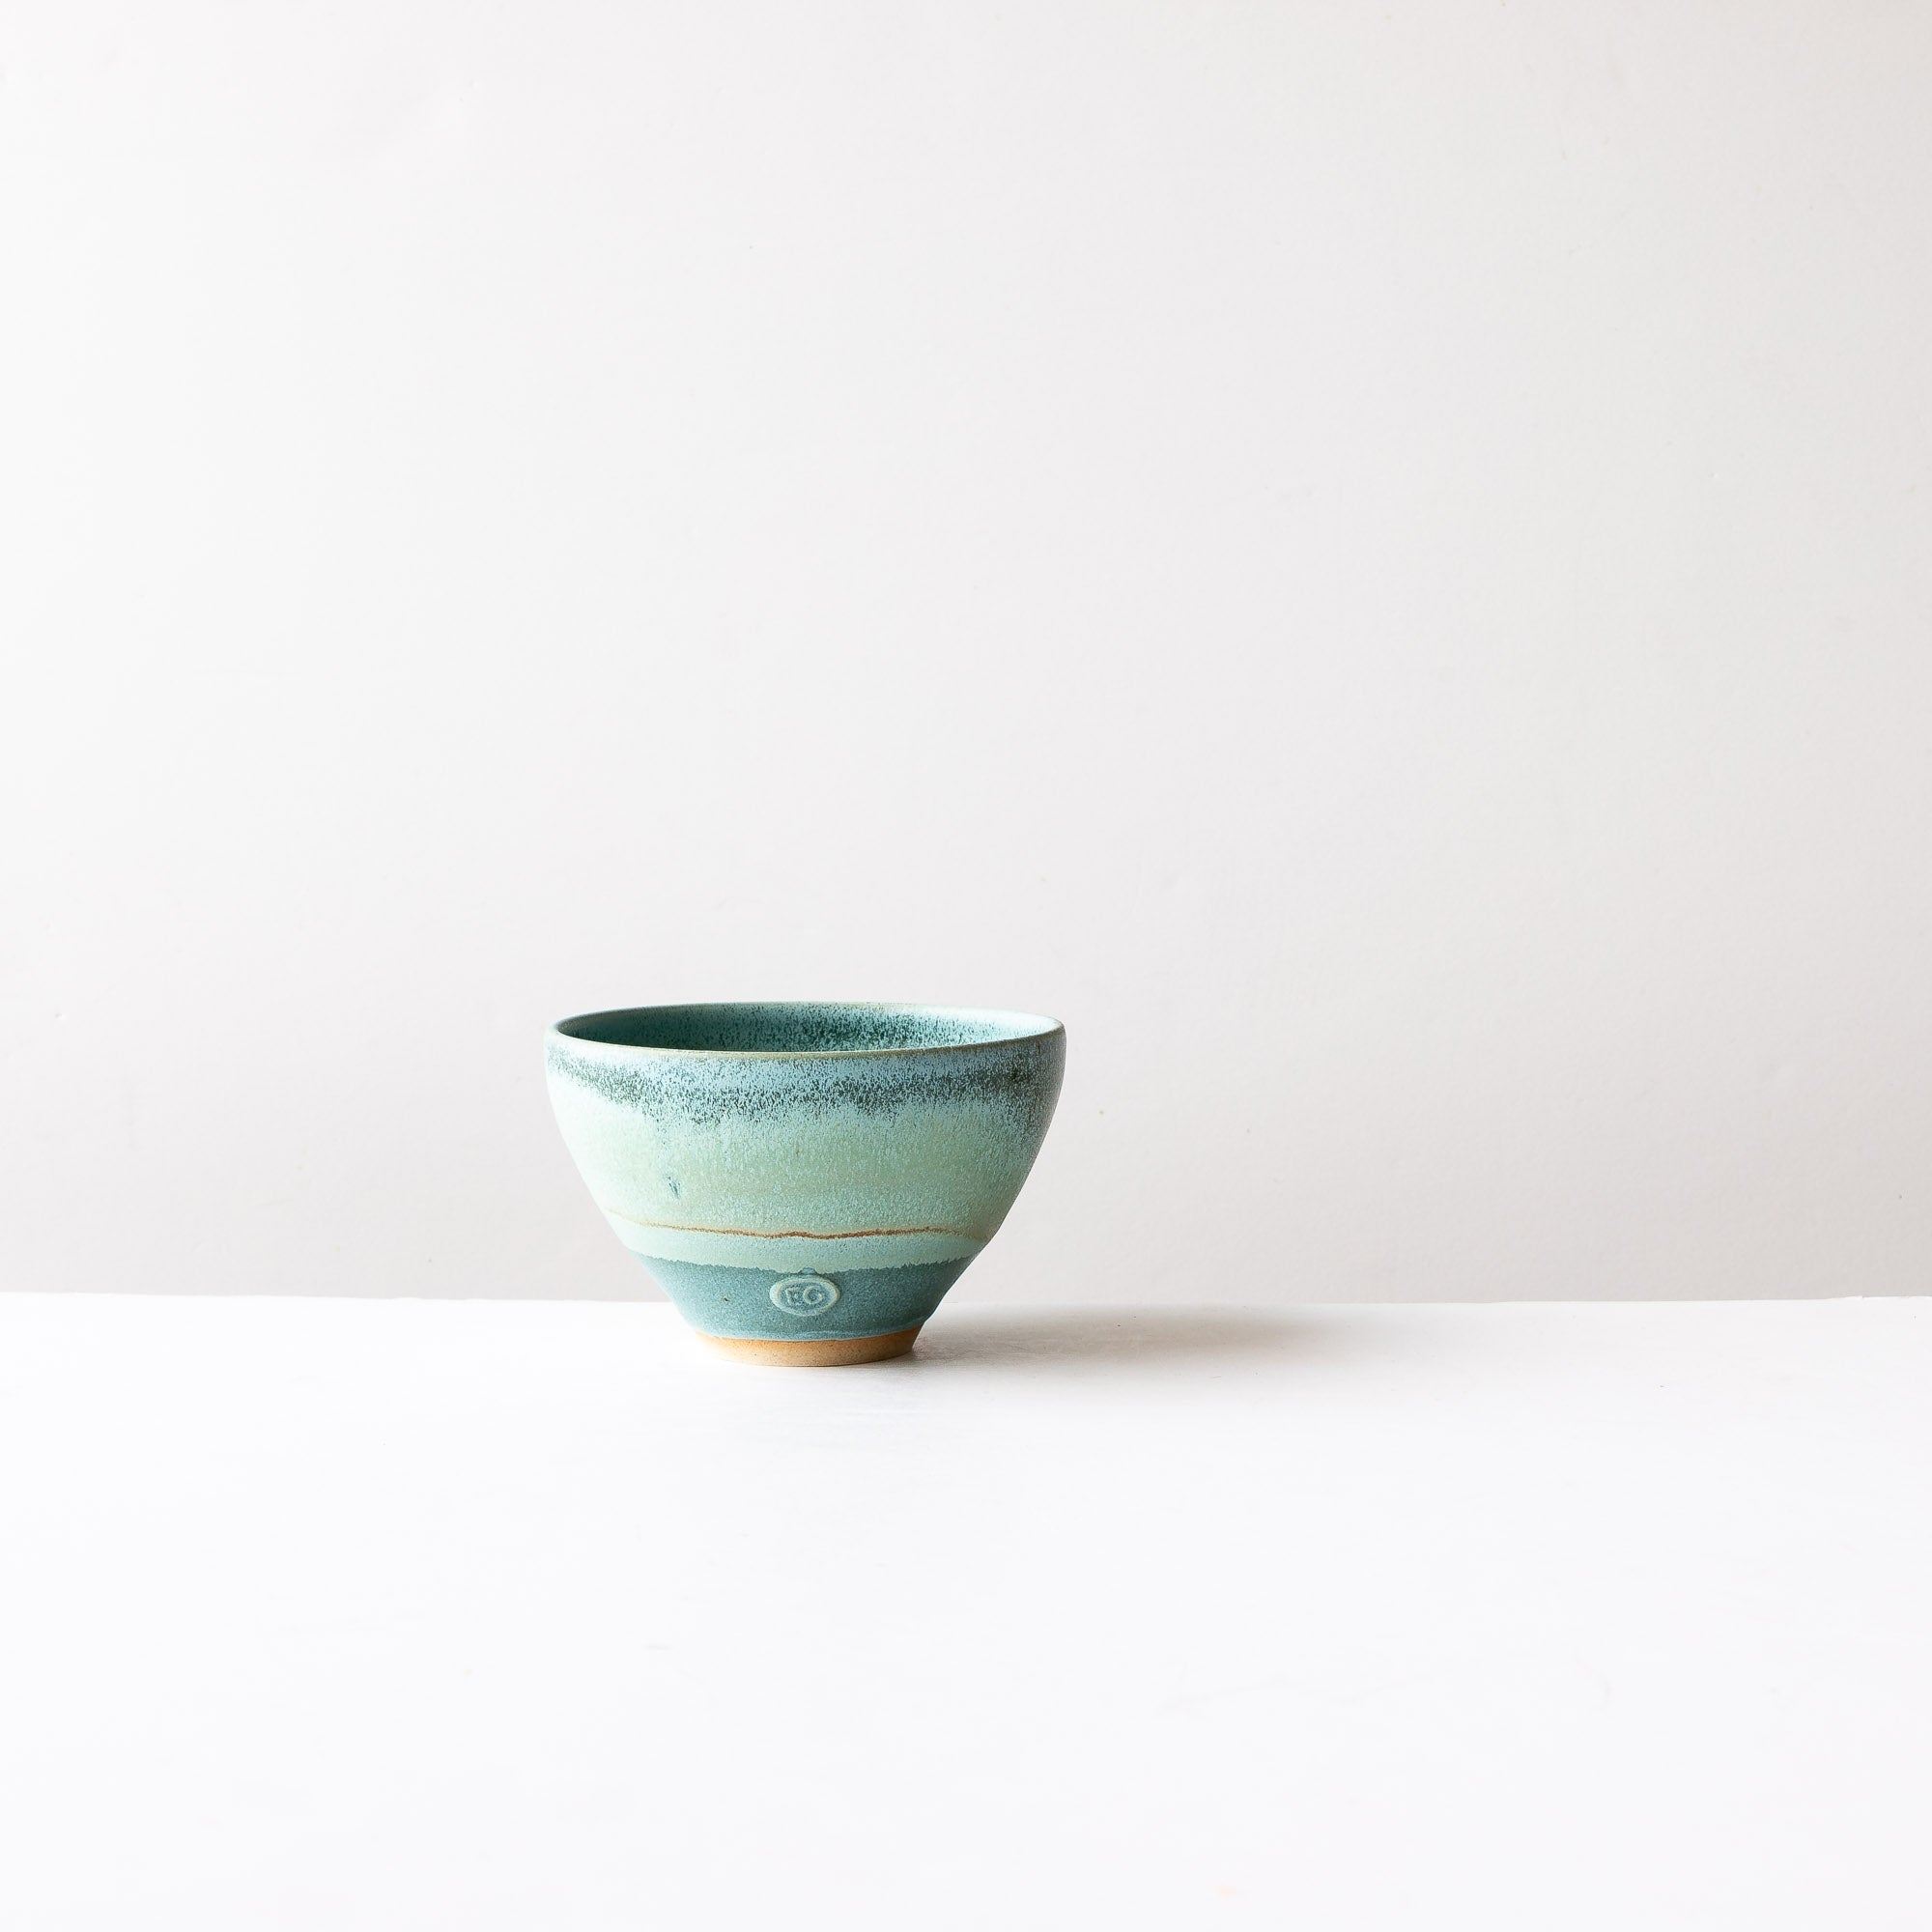 Handmade Ceramic Stoneware Bowl - Froth on the Daydream - Sold by Chic & Basta